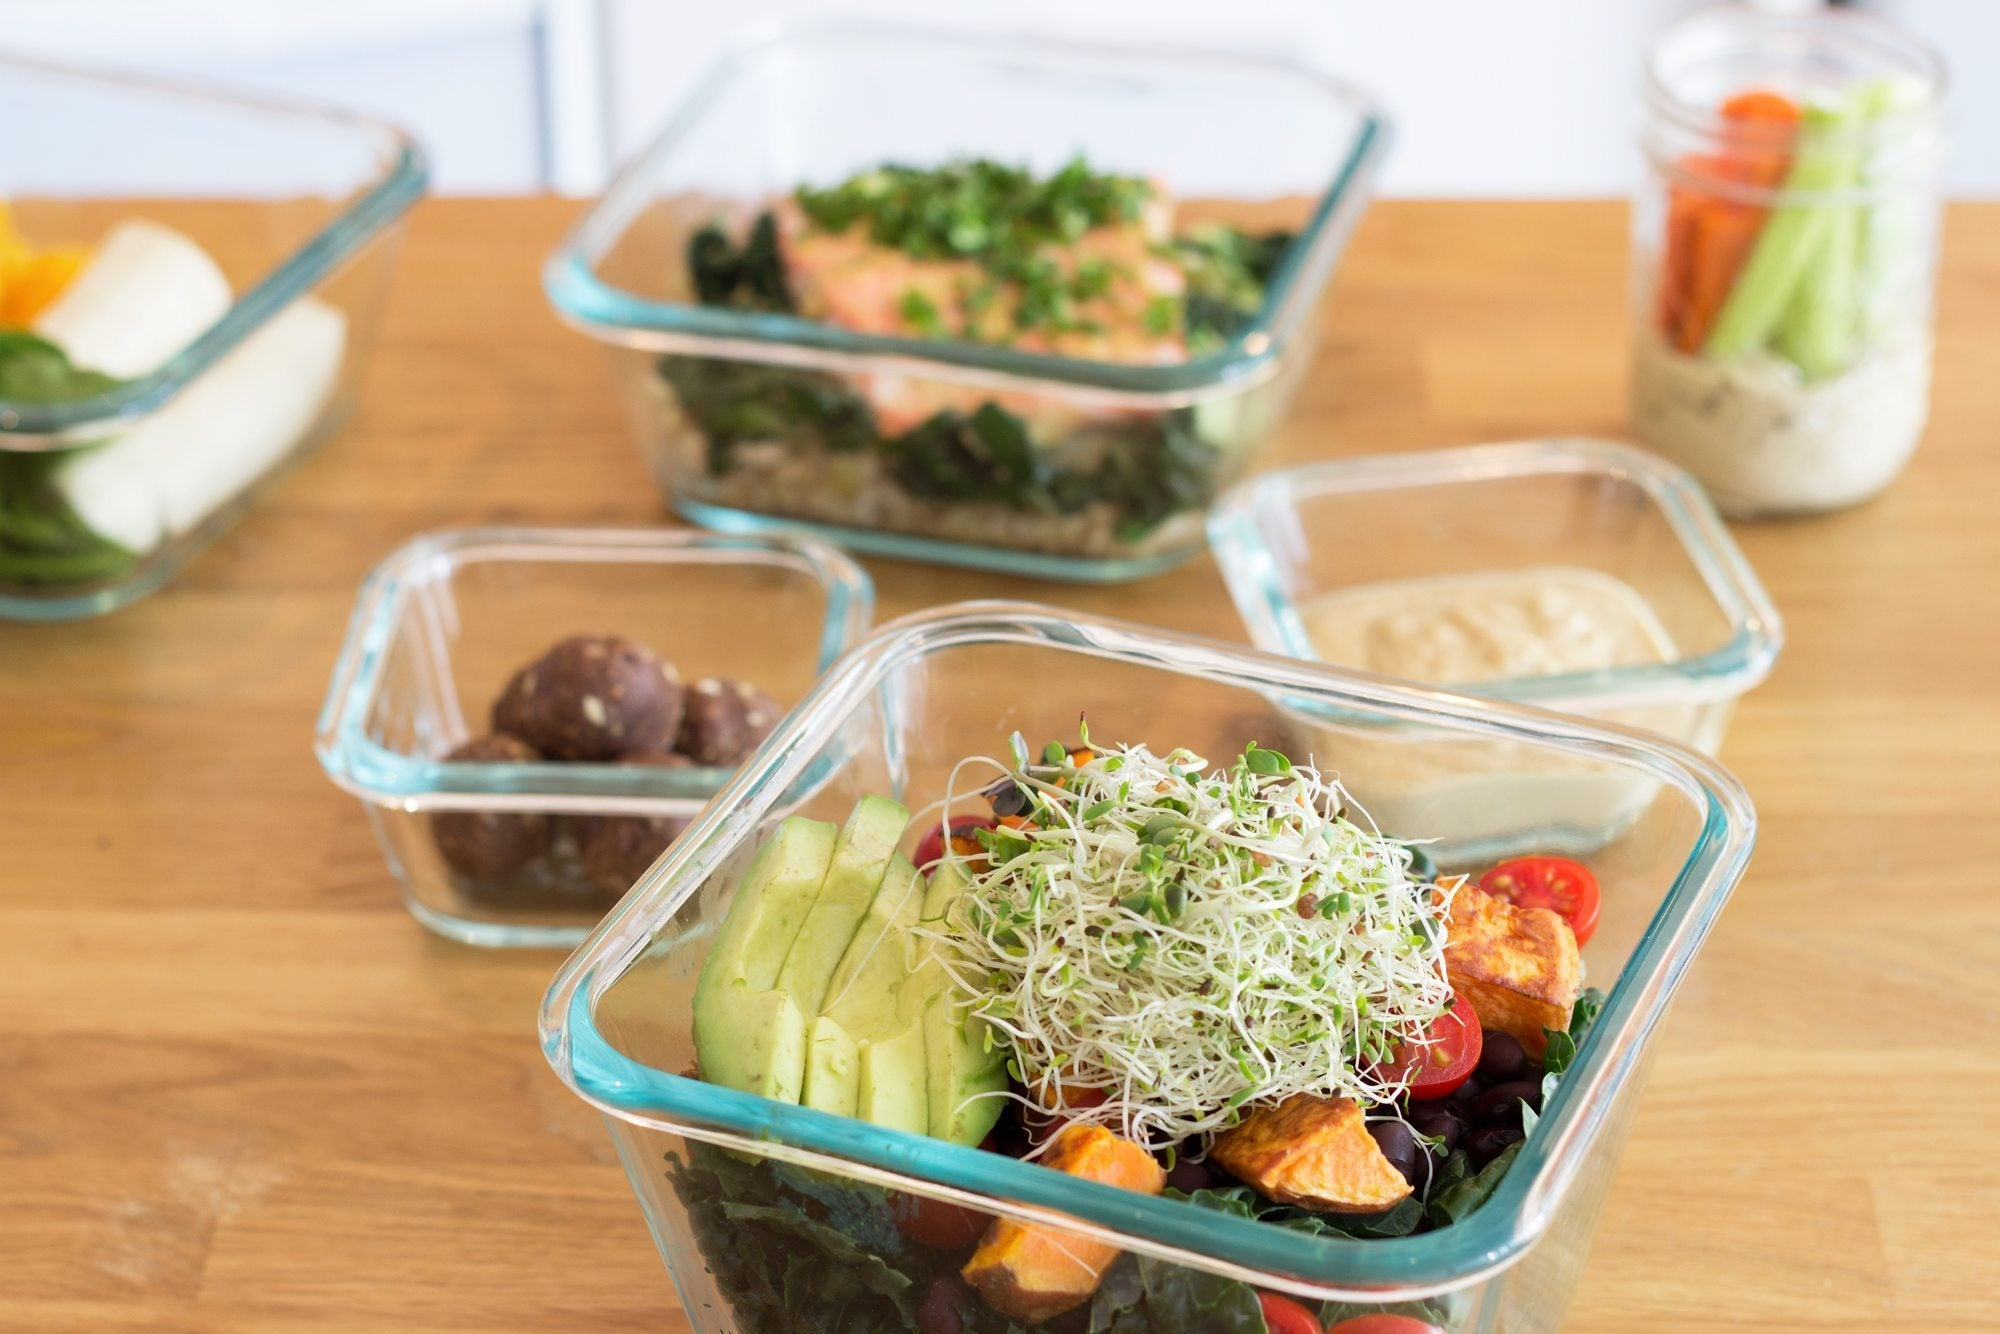 meal planning is great for back to school lunches